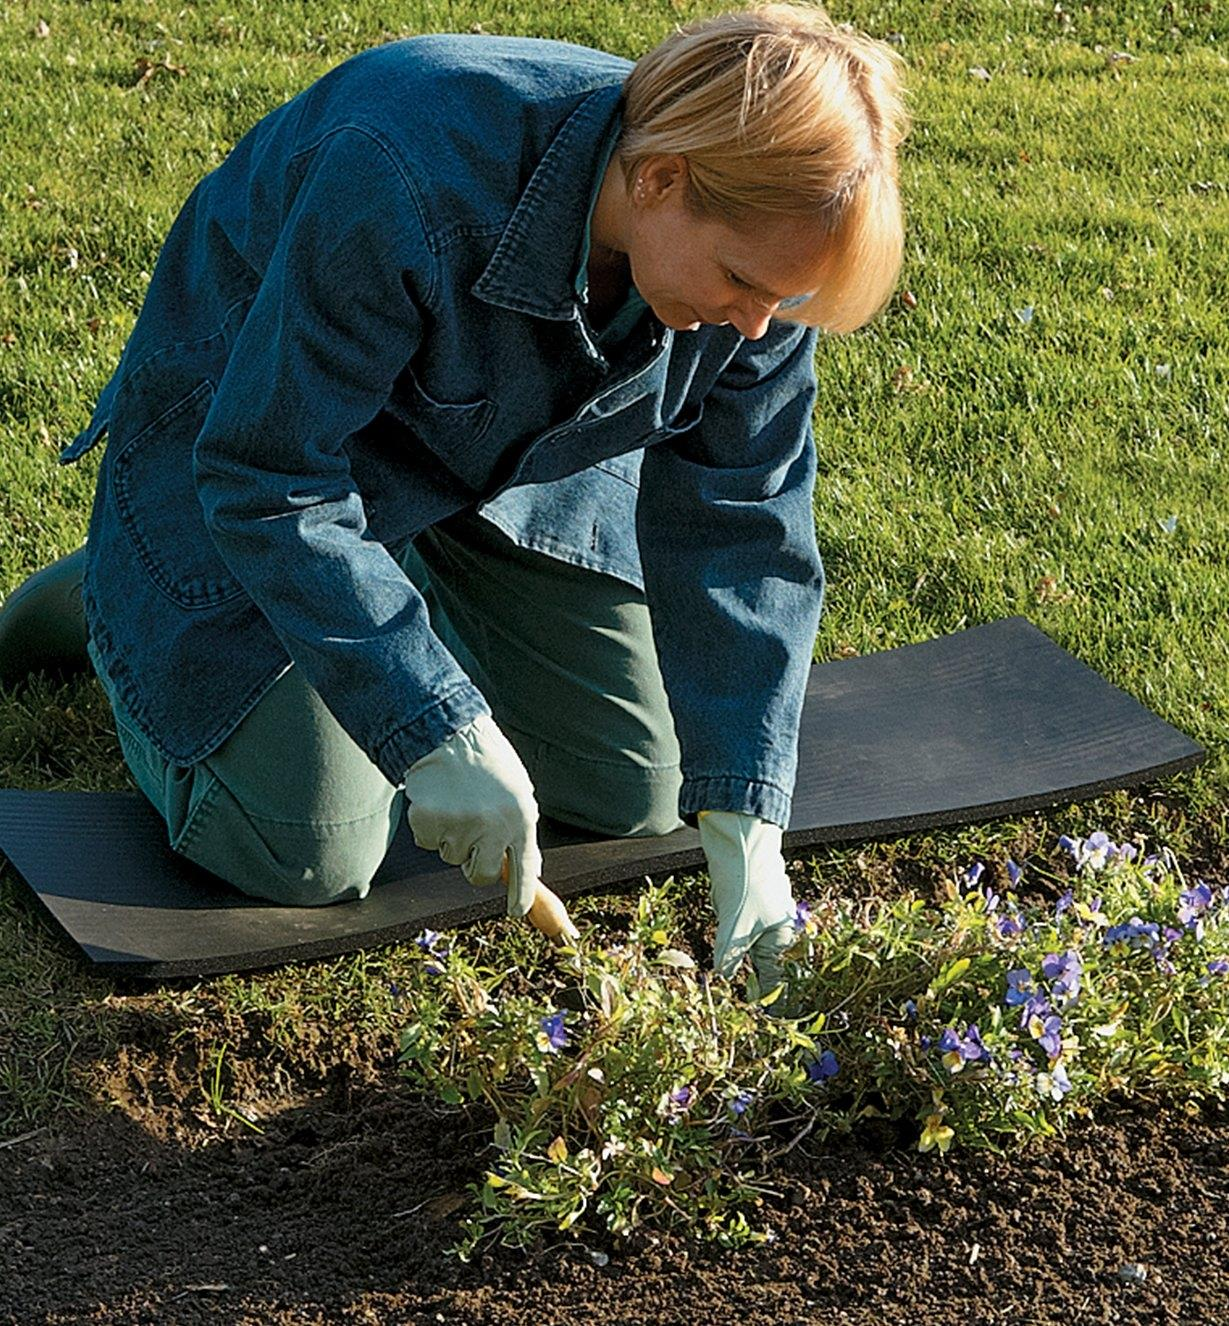 A woman kneels on on the Kneeling Strip while gardening